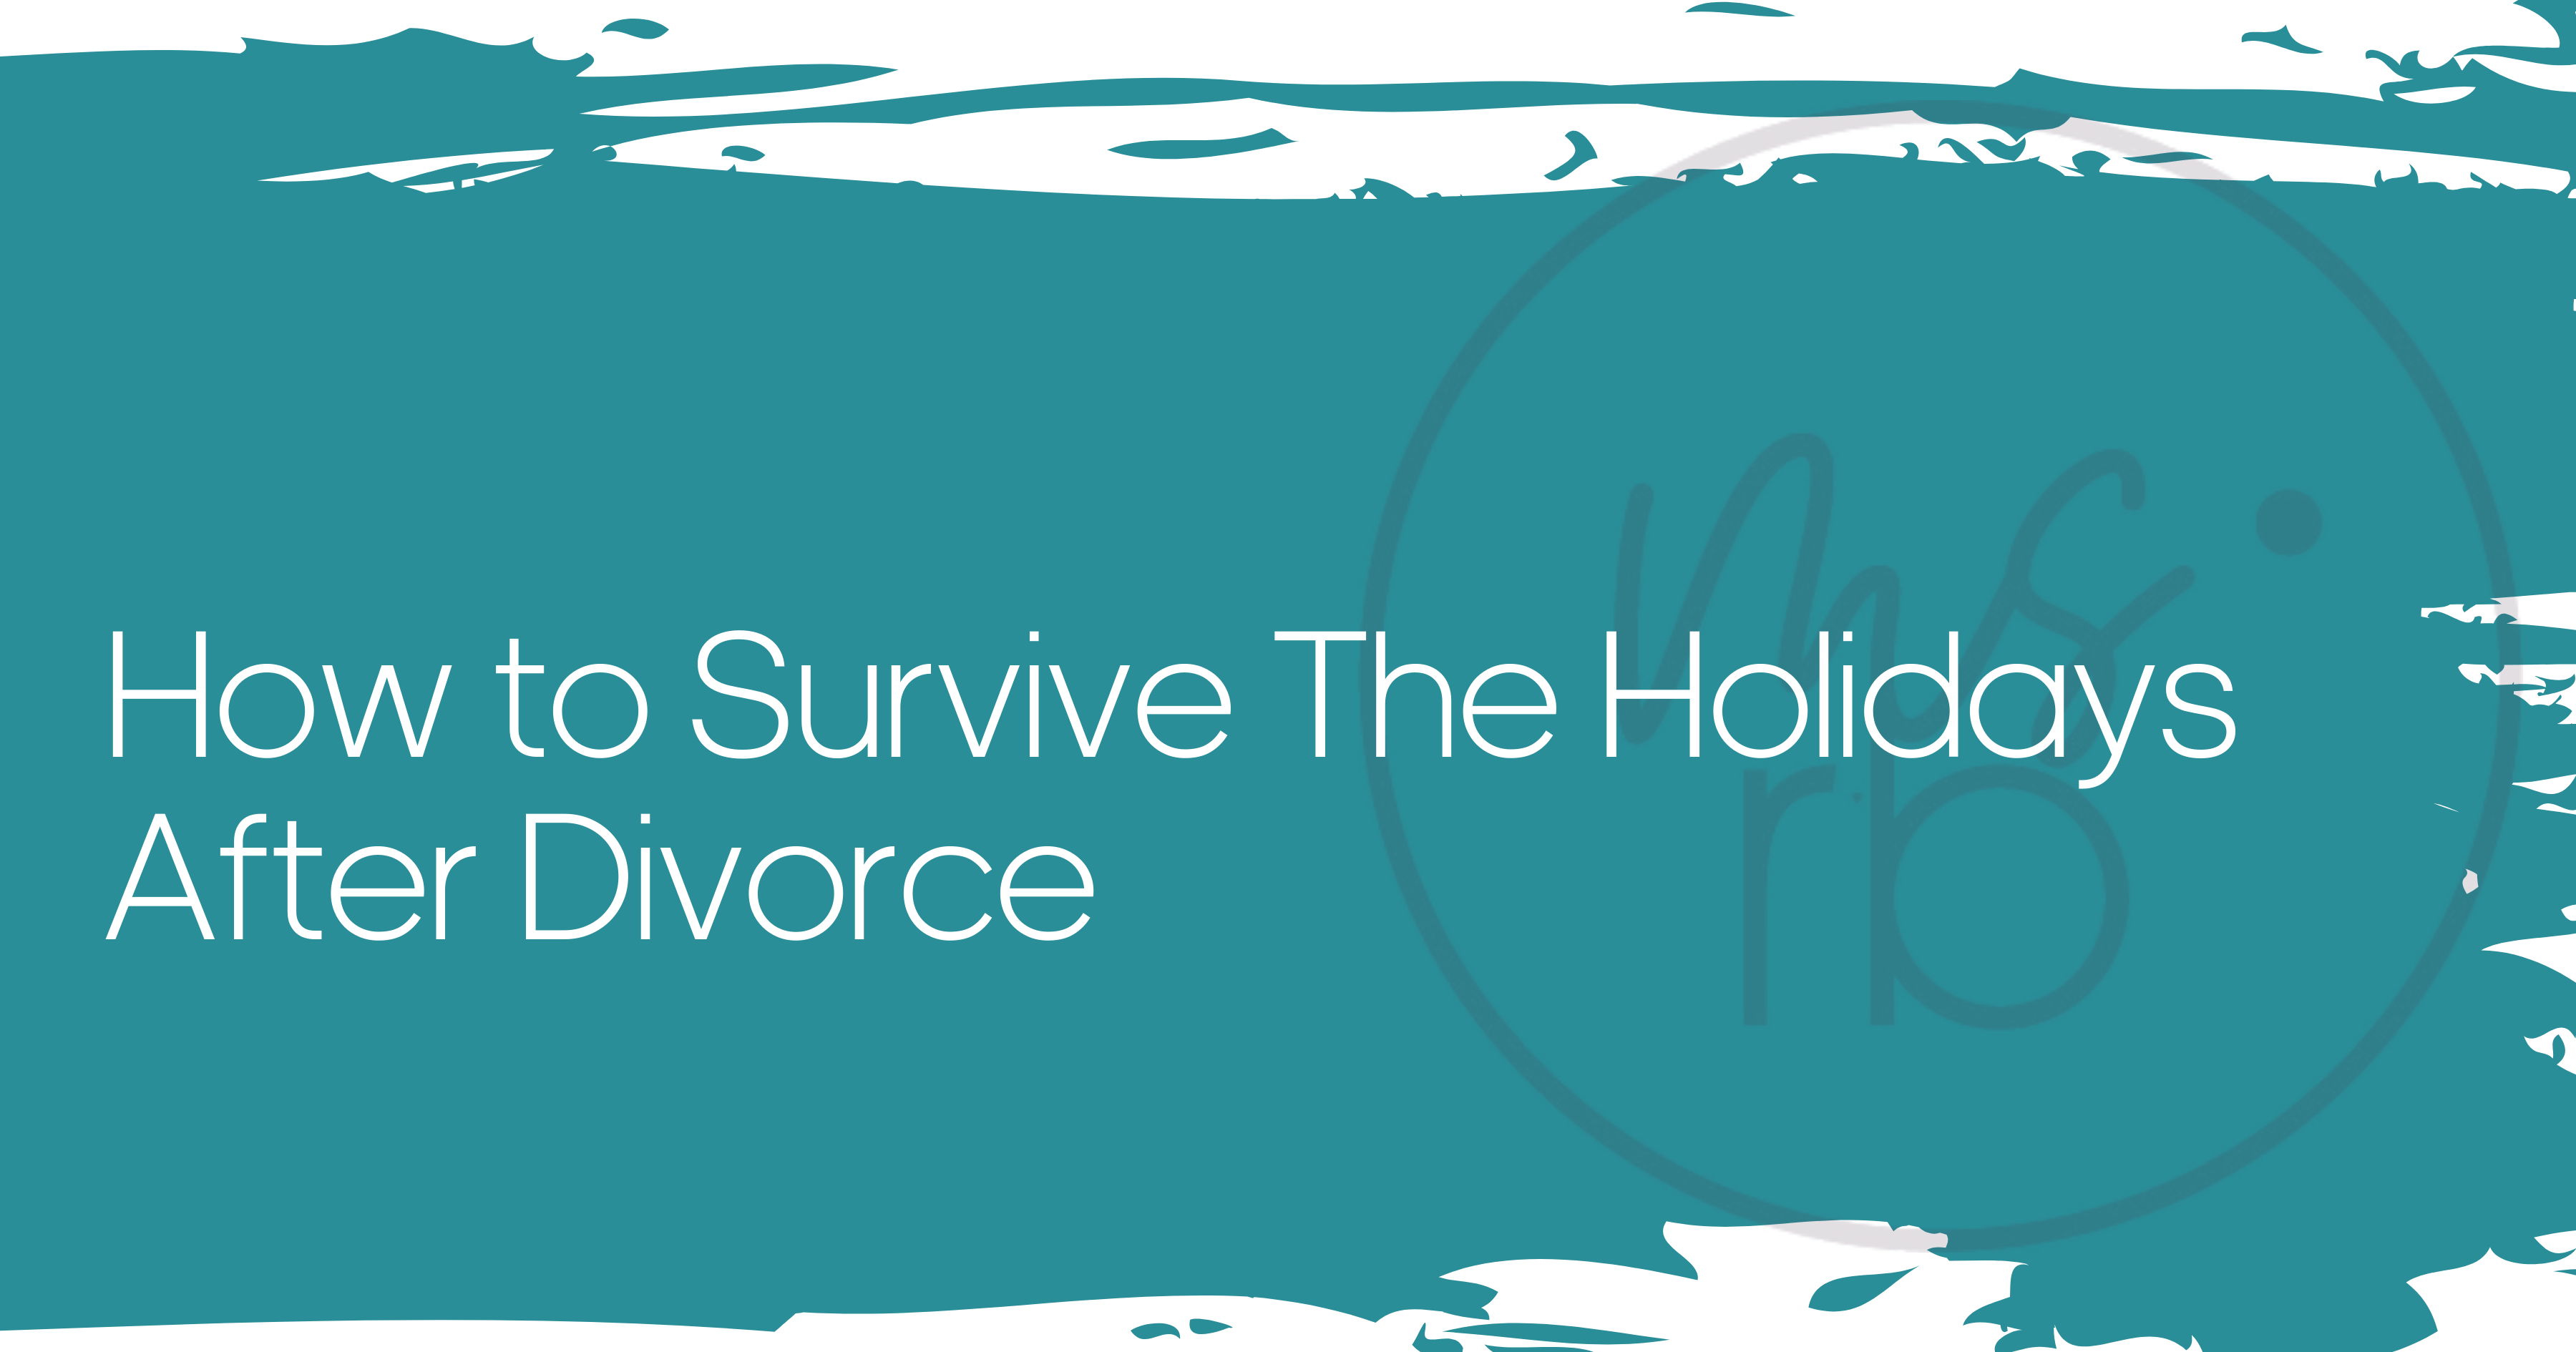 How to Survive Your First Holiday After a Divorce